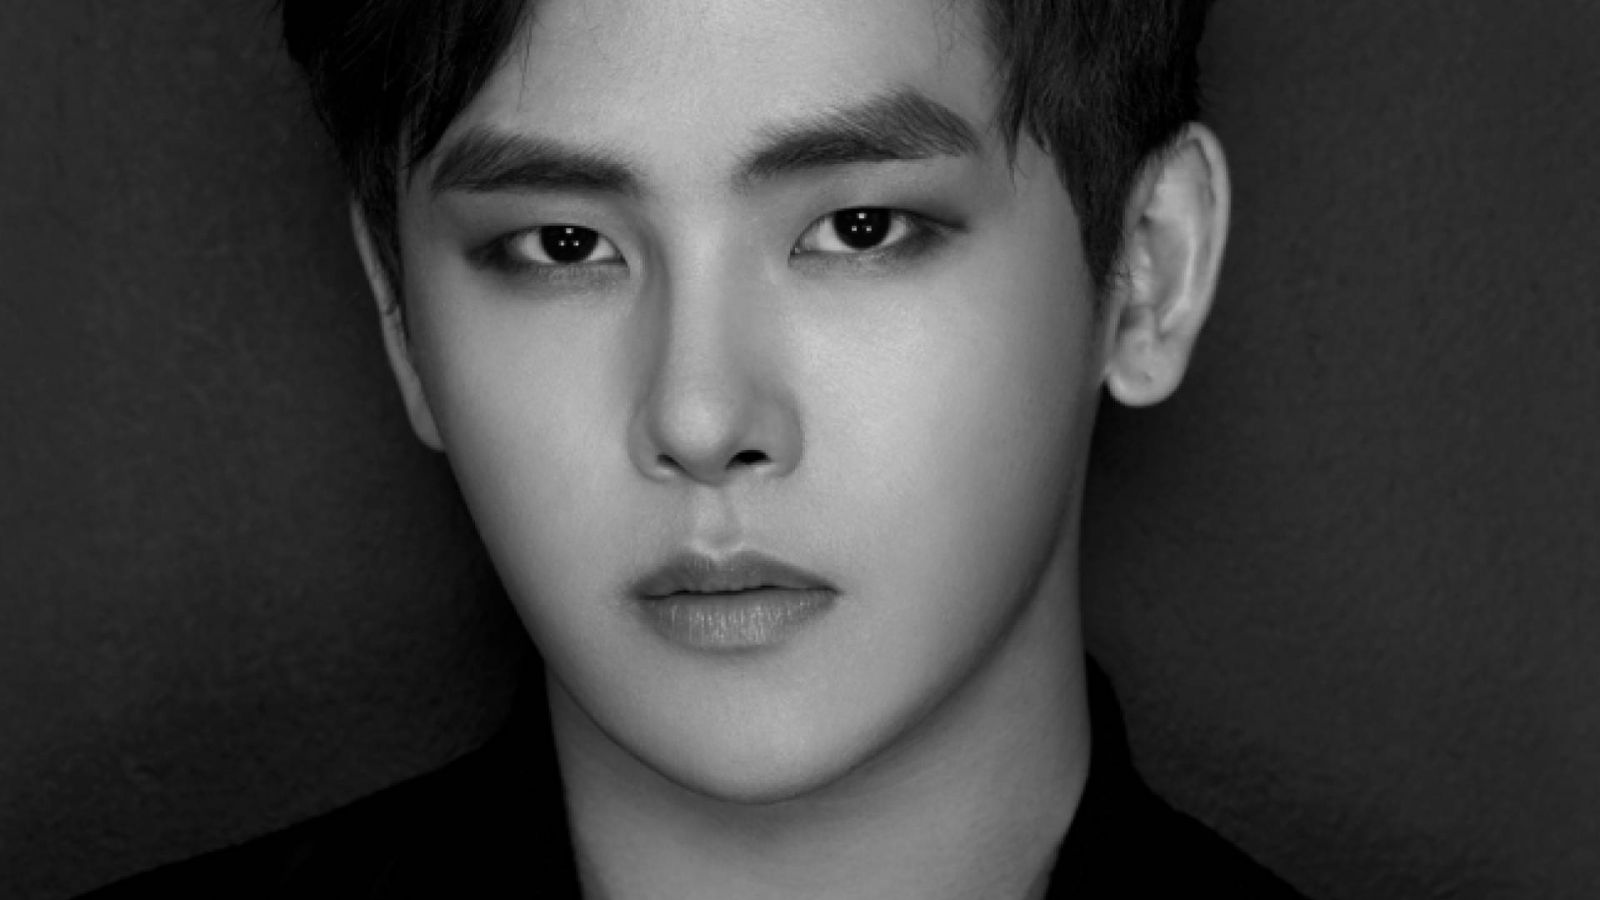 Hoya Leaves Infinite © Woollim Entertainment Co., Ltd